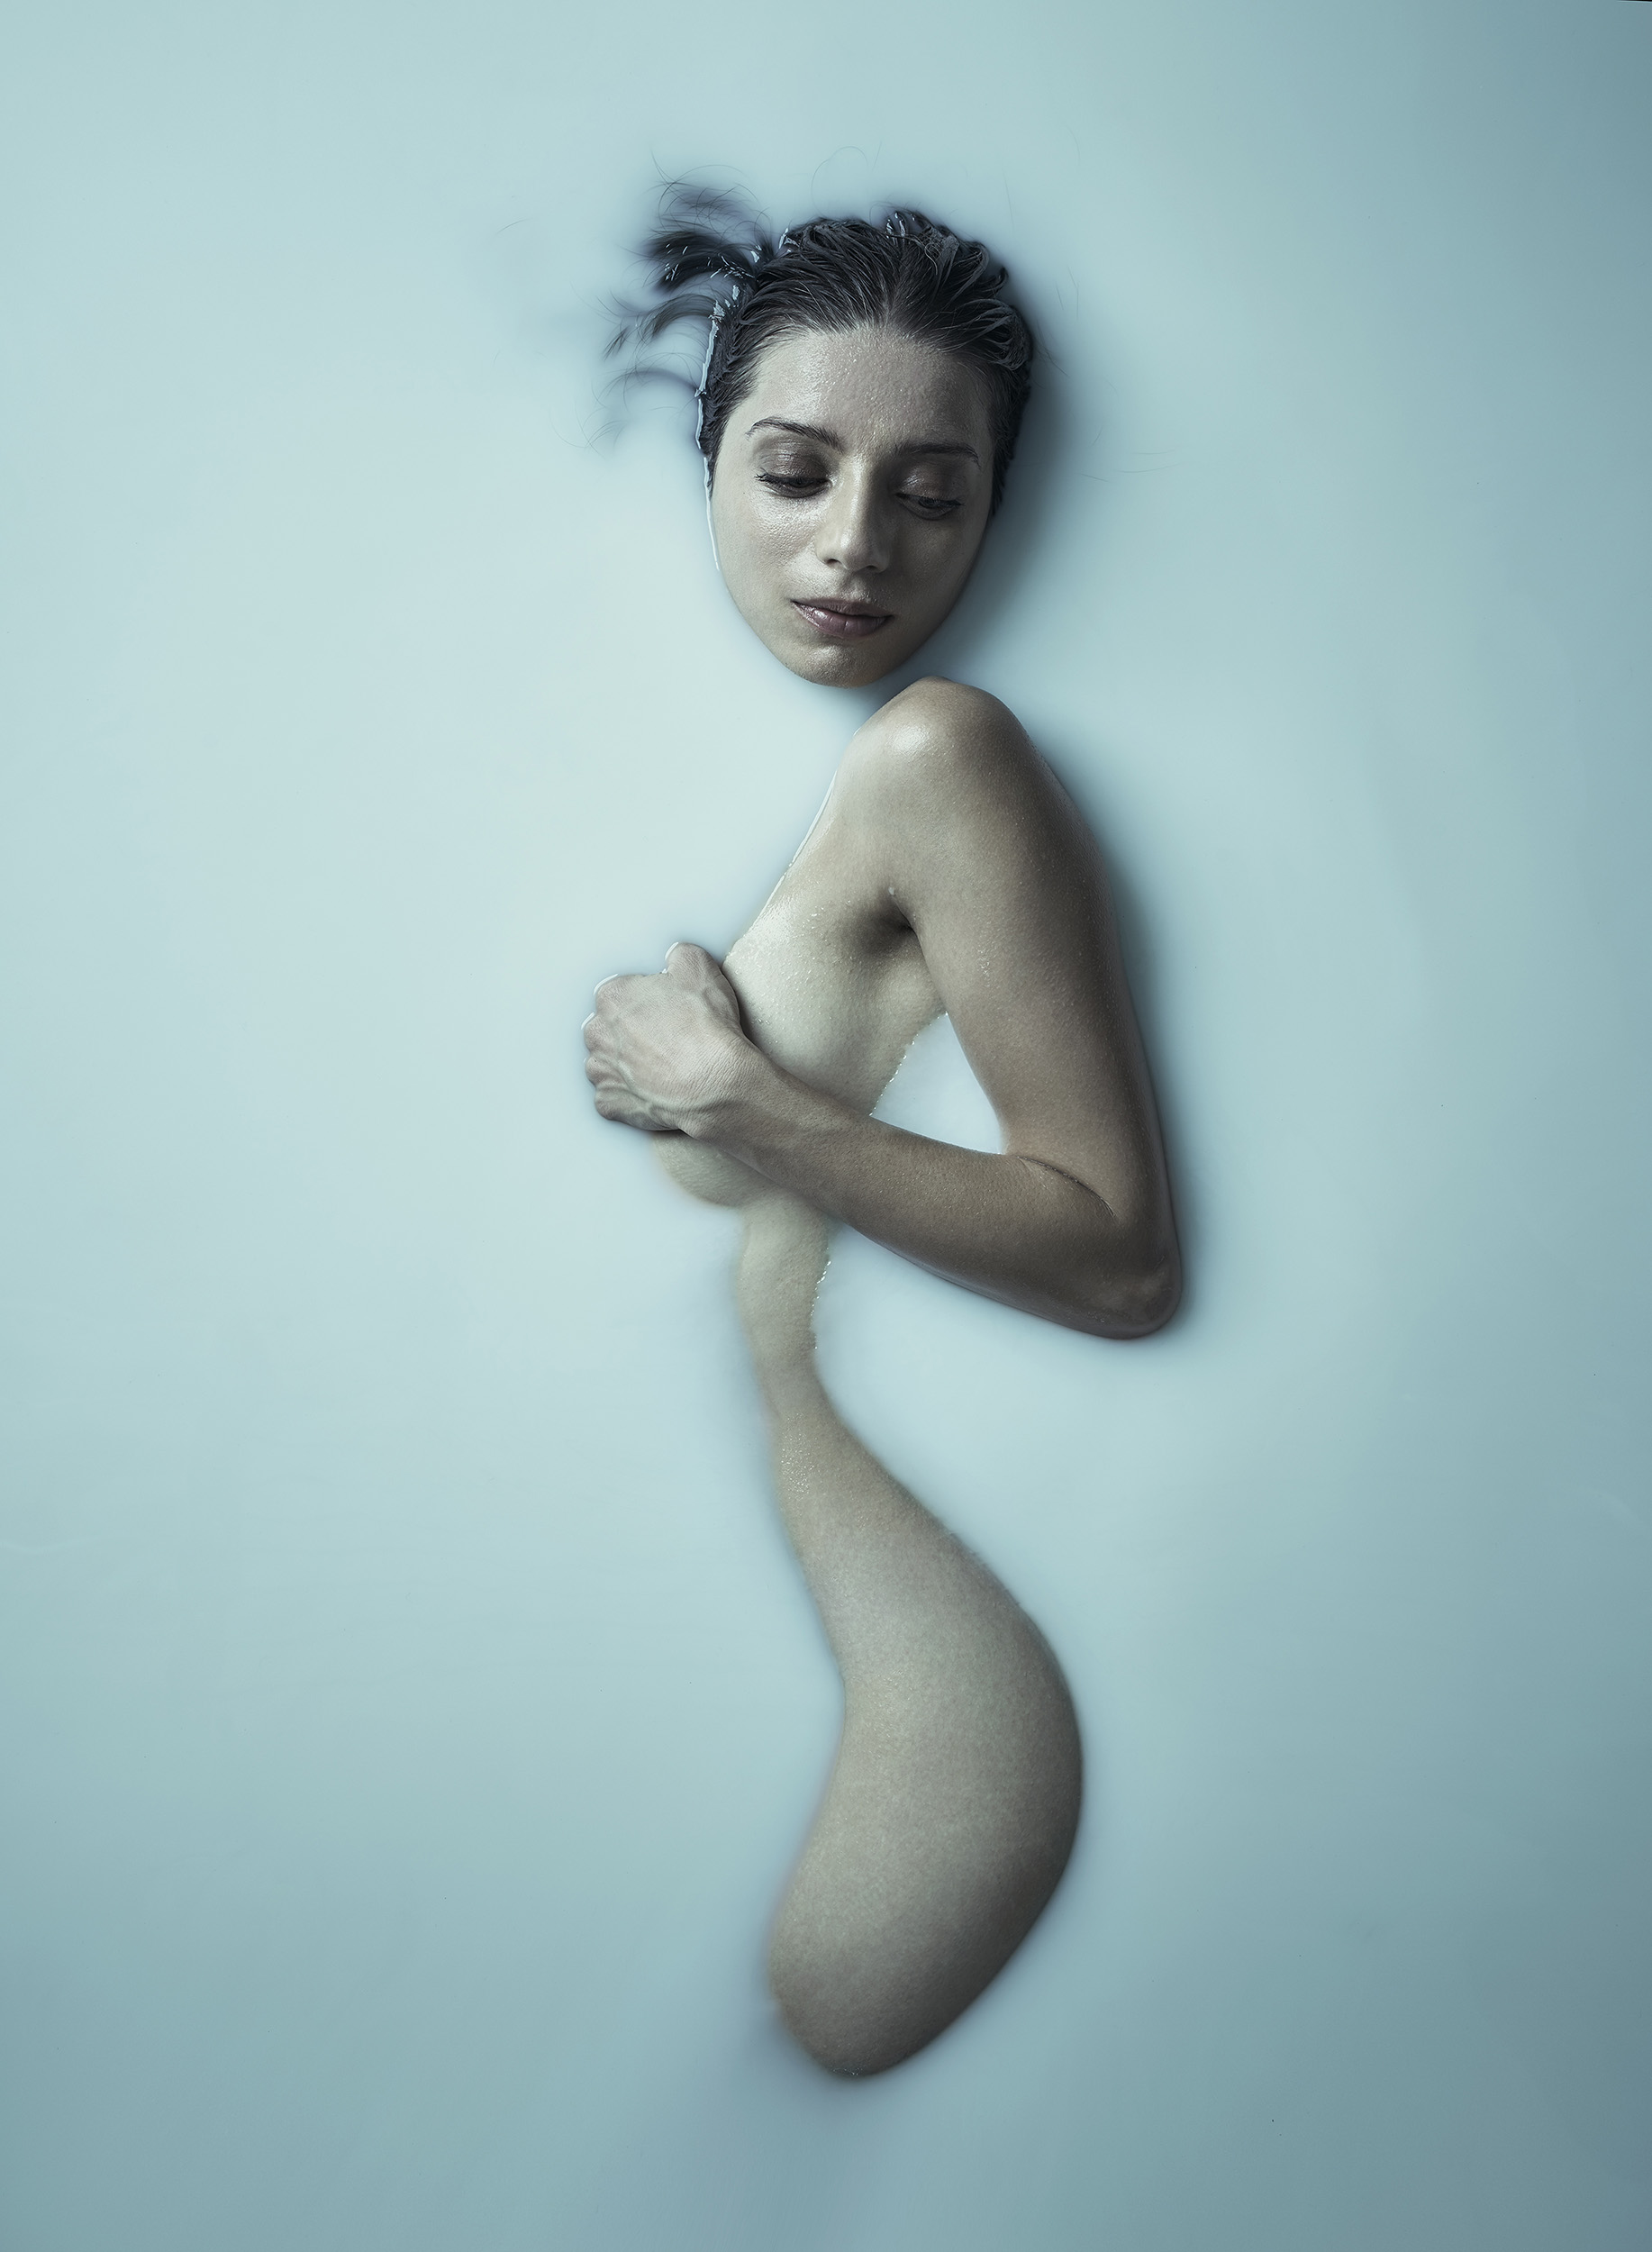 Angela_Sarafyan_by_Robert_Ascroft-MILK-03